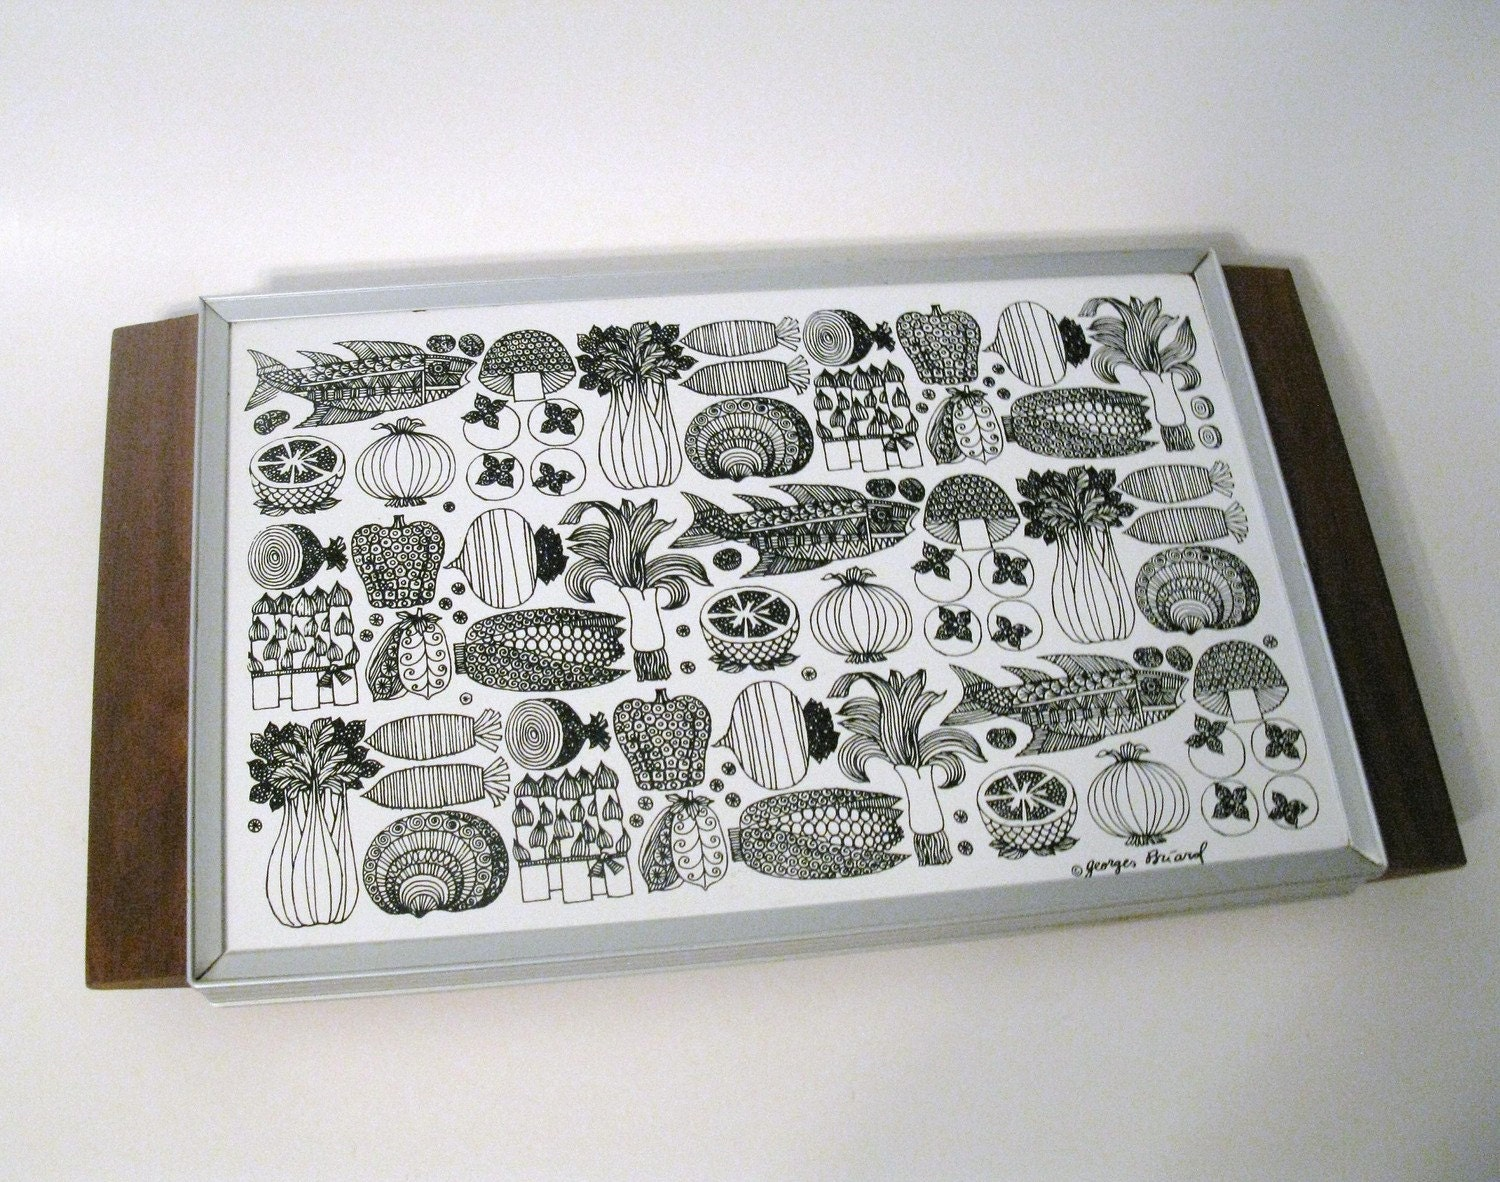 Rare Vintage Georges Briard Warming Tray Mod Mushrooms By